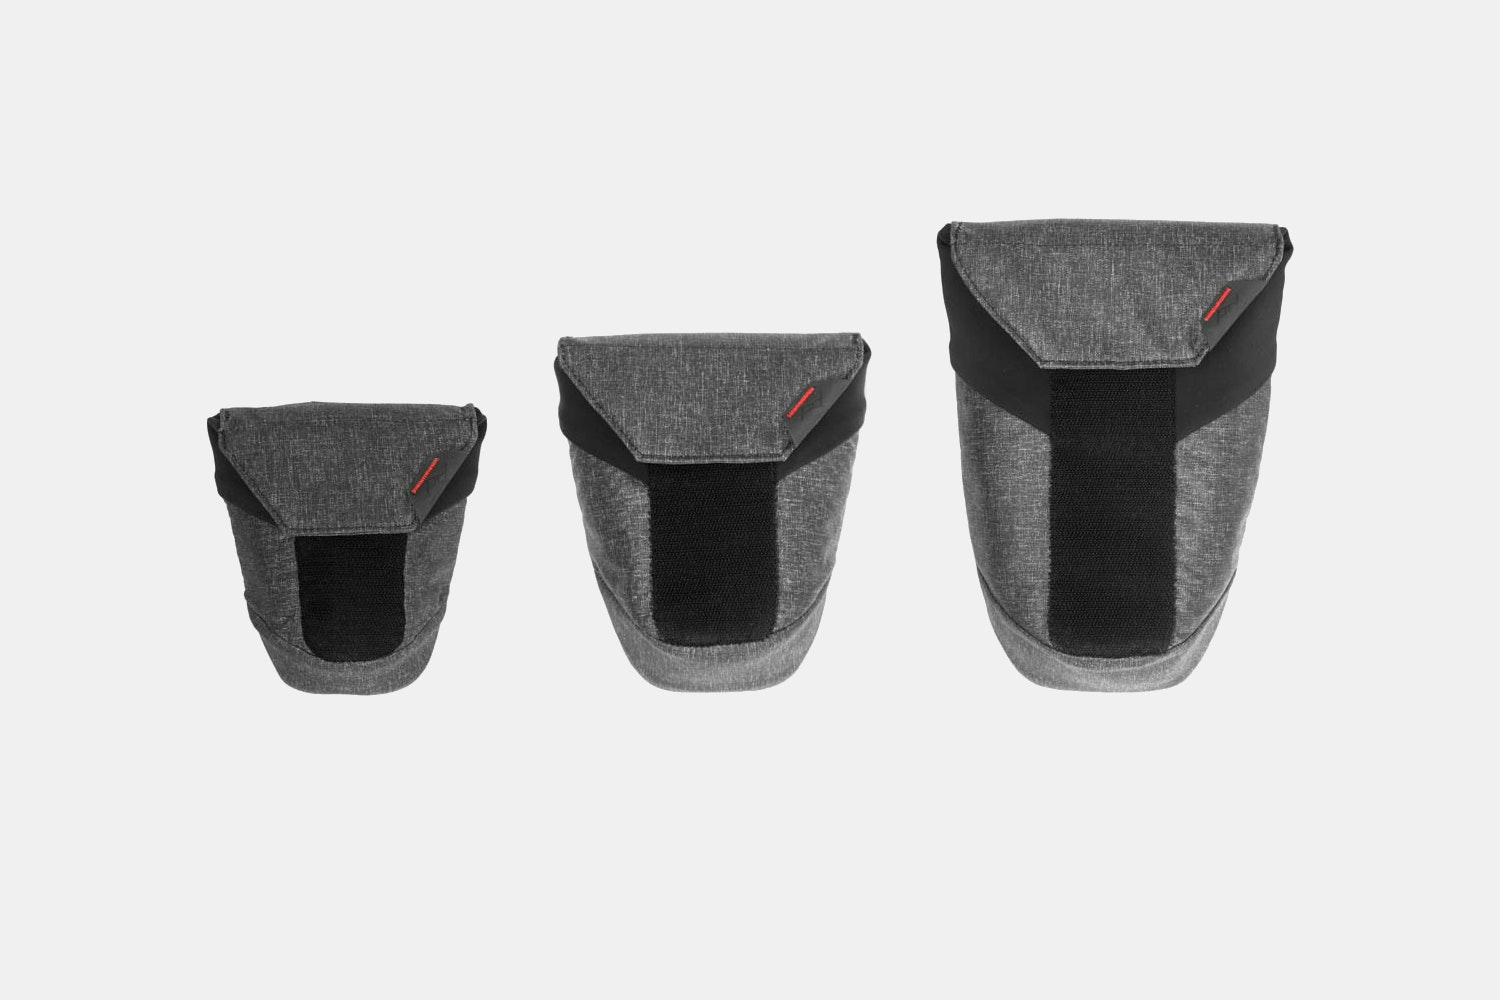 Range Pouch - Small ($29.99), Medium ($33.99) and Large ($37.99)